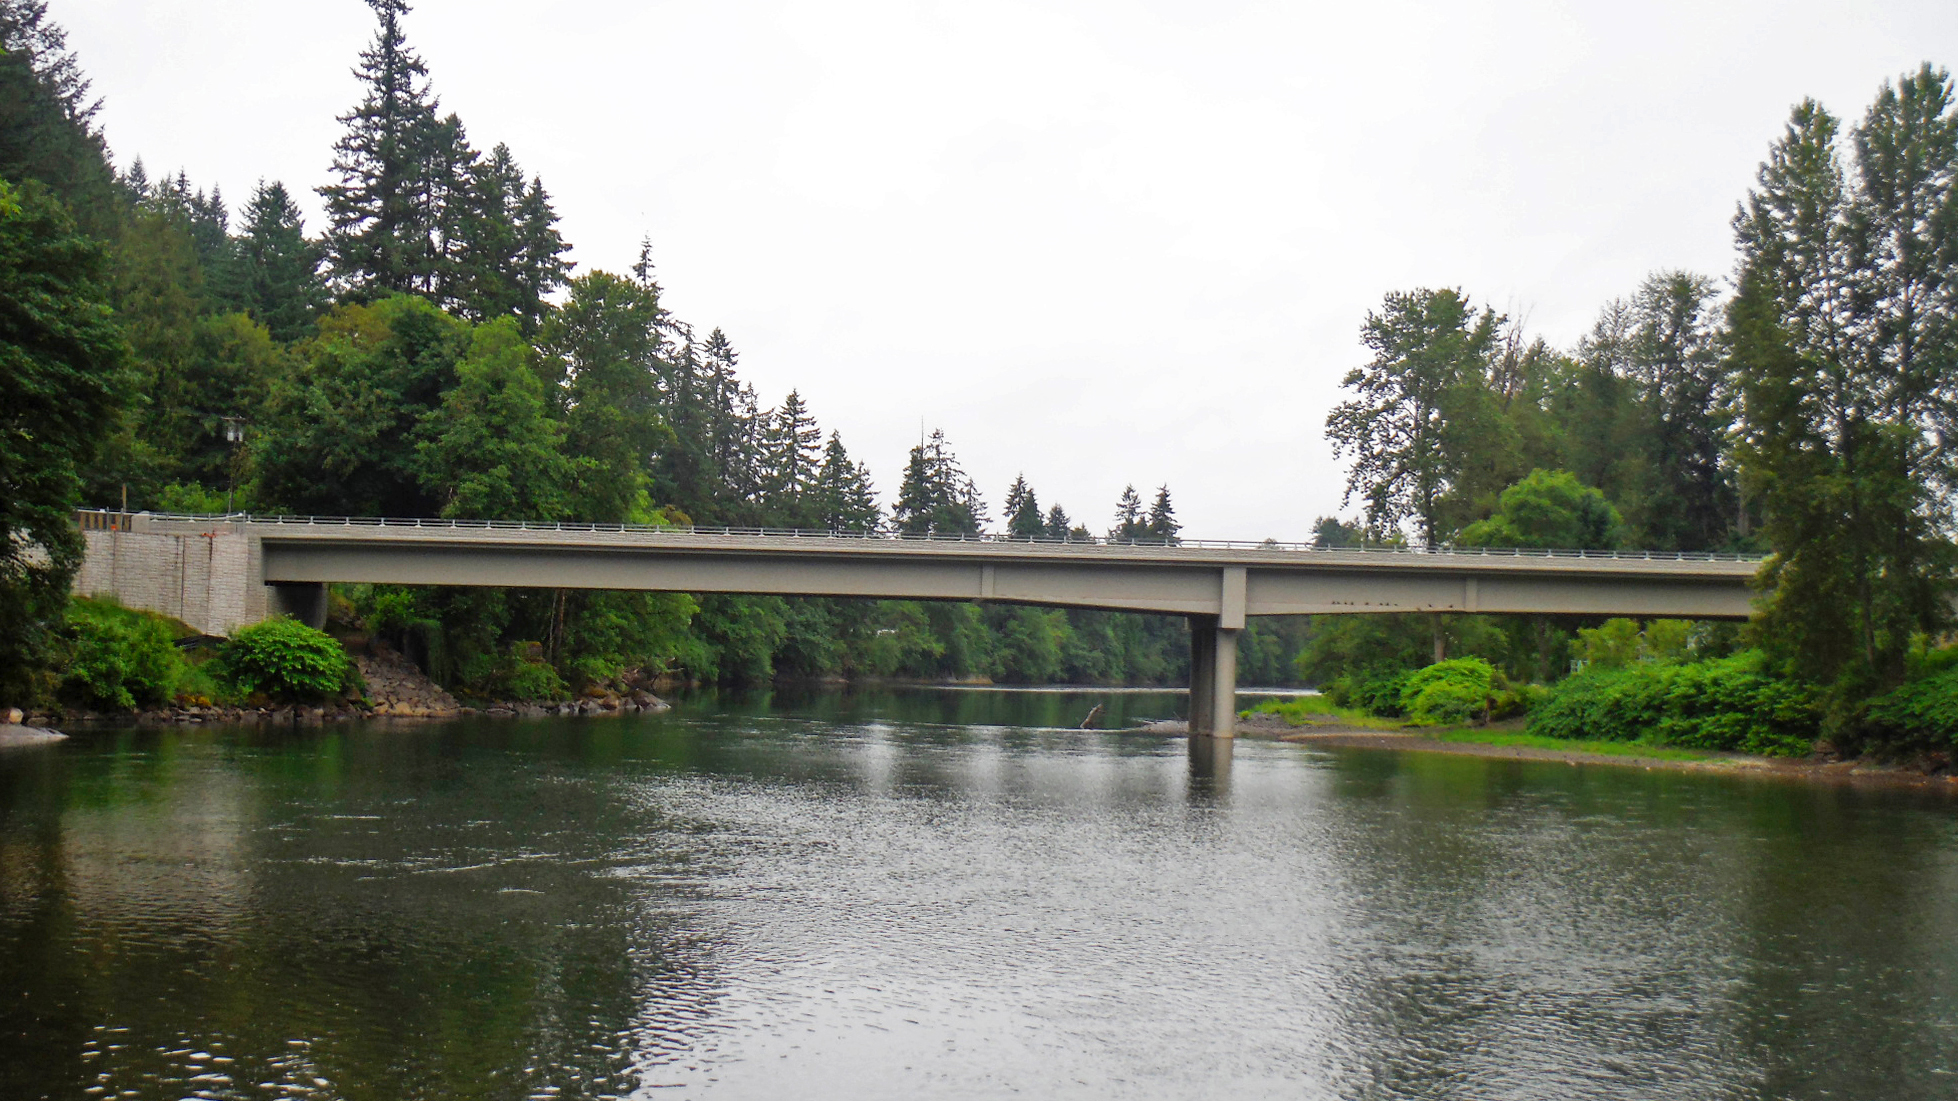 Clackamas River Bridge Replacement | Clackamas County, Oregon